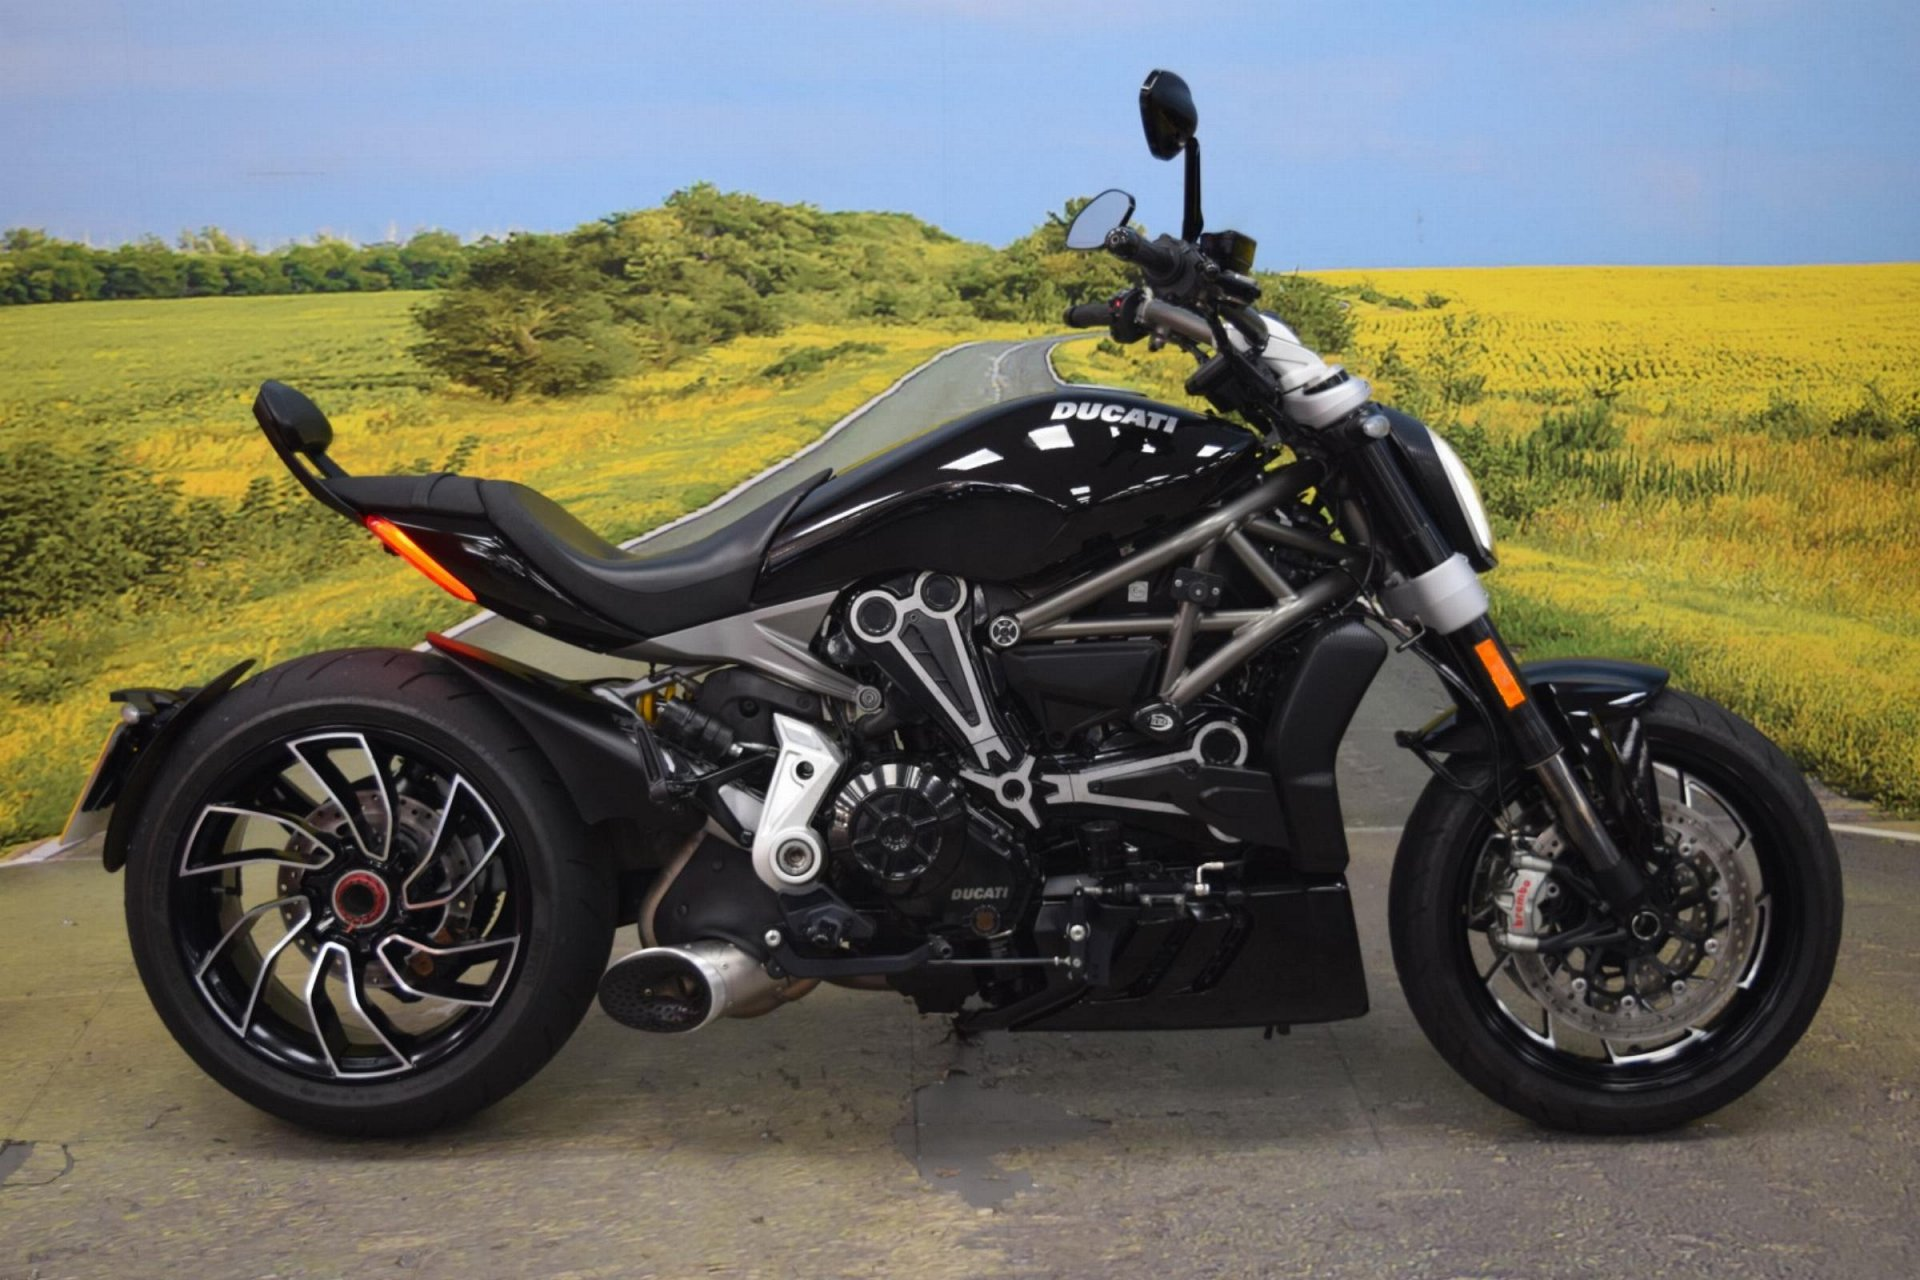 2016 Ducati X Diavel S for sale in Staffordshire